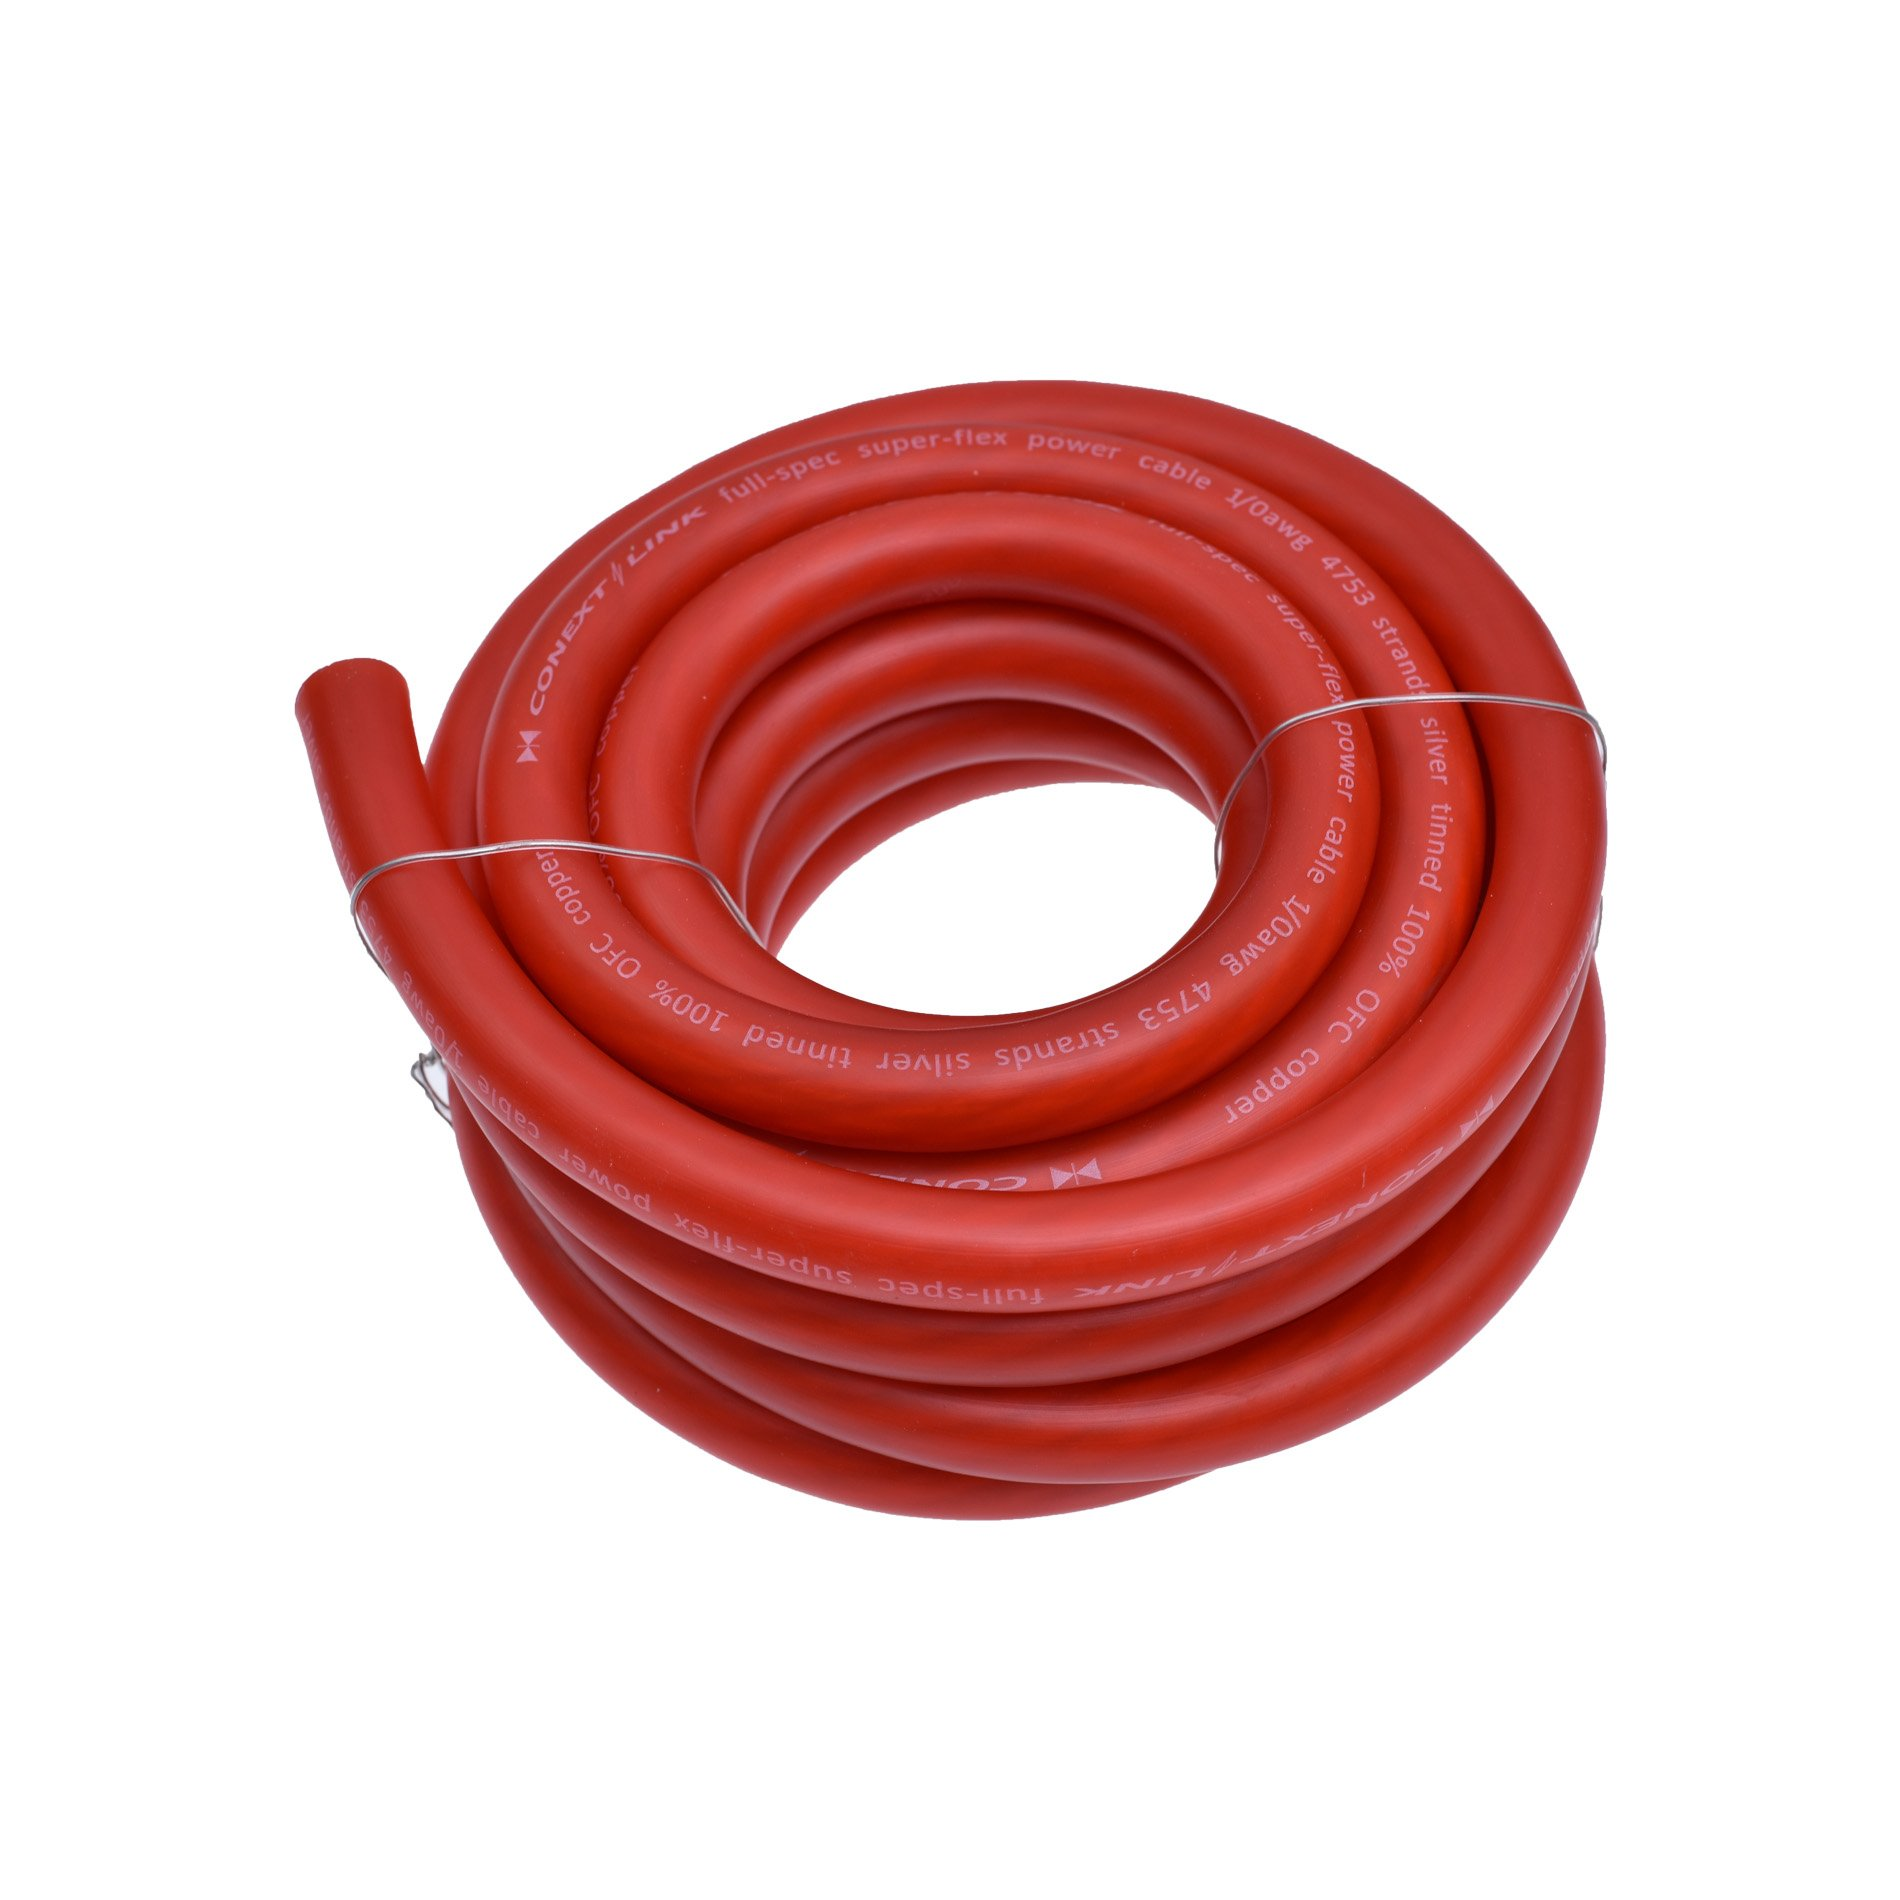 Conext Link 15 FT 1/0 AWG 0 GA Full Gauge Battery Power Cable Ground Wire Frost Red OFC Copper